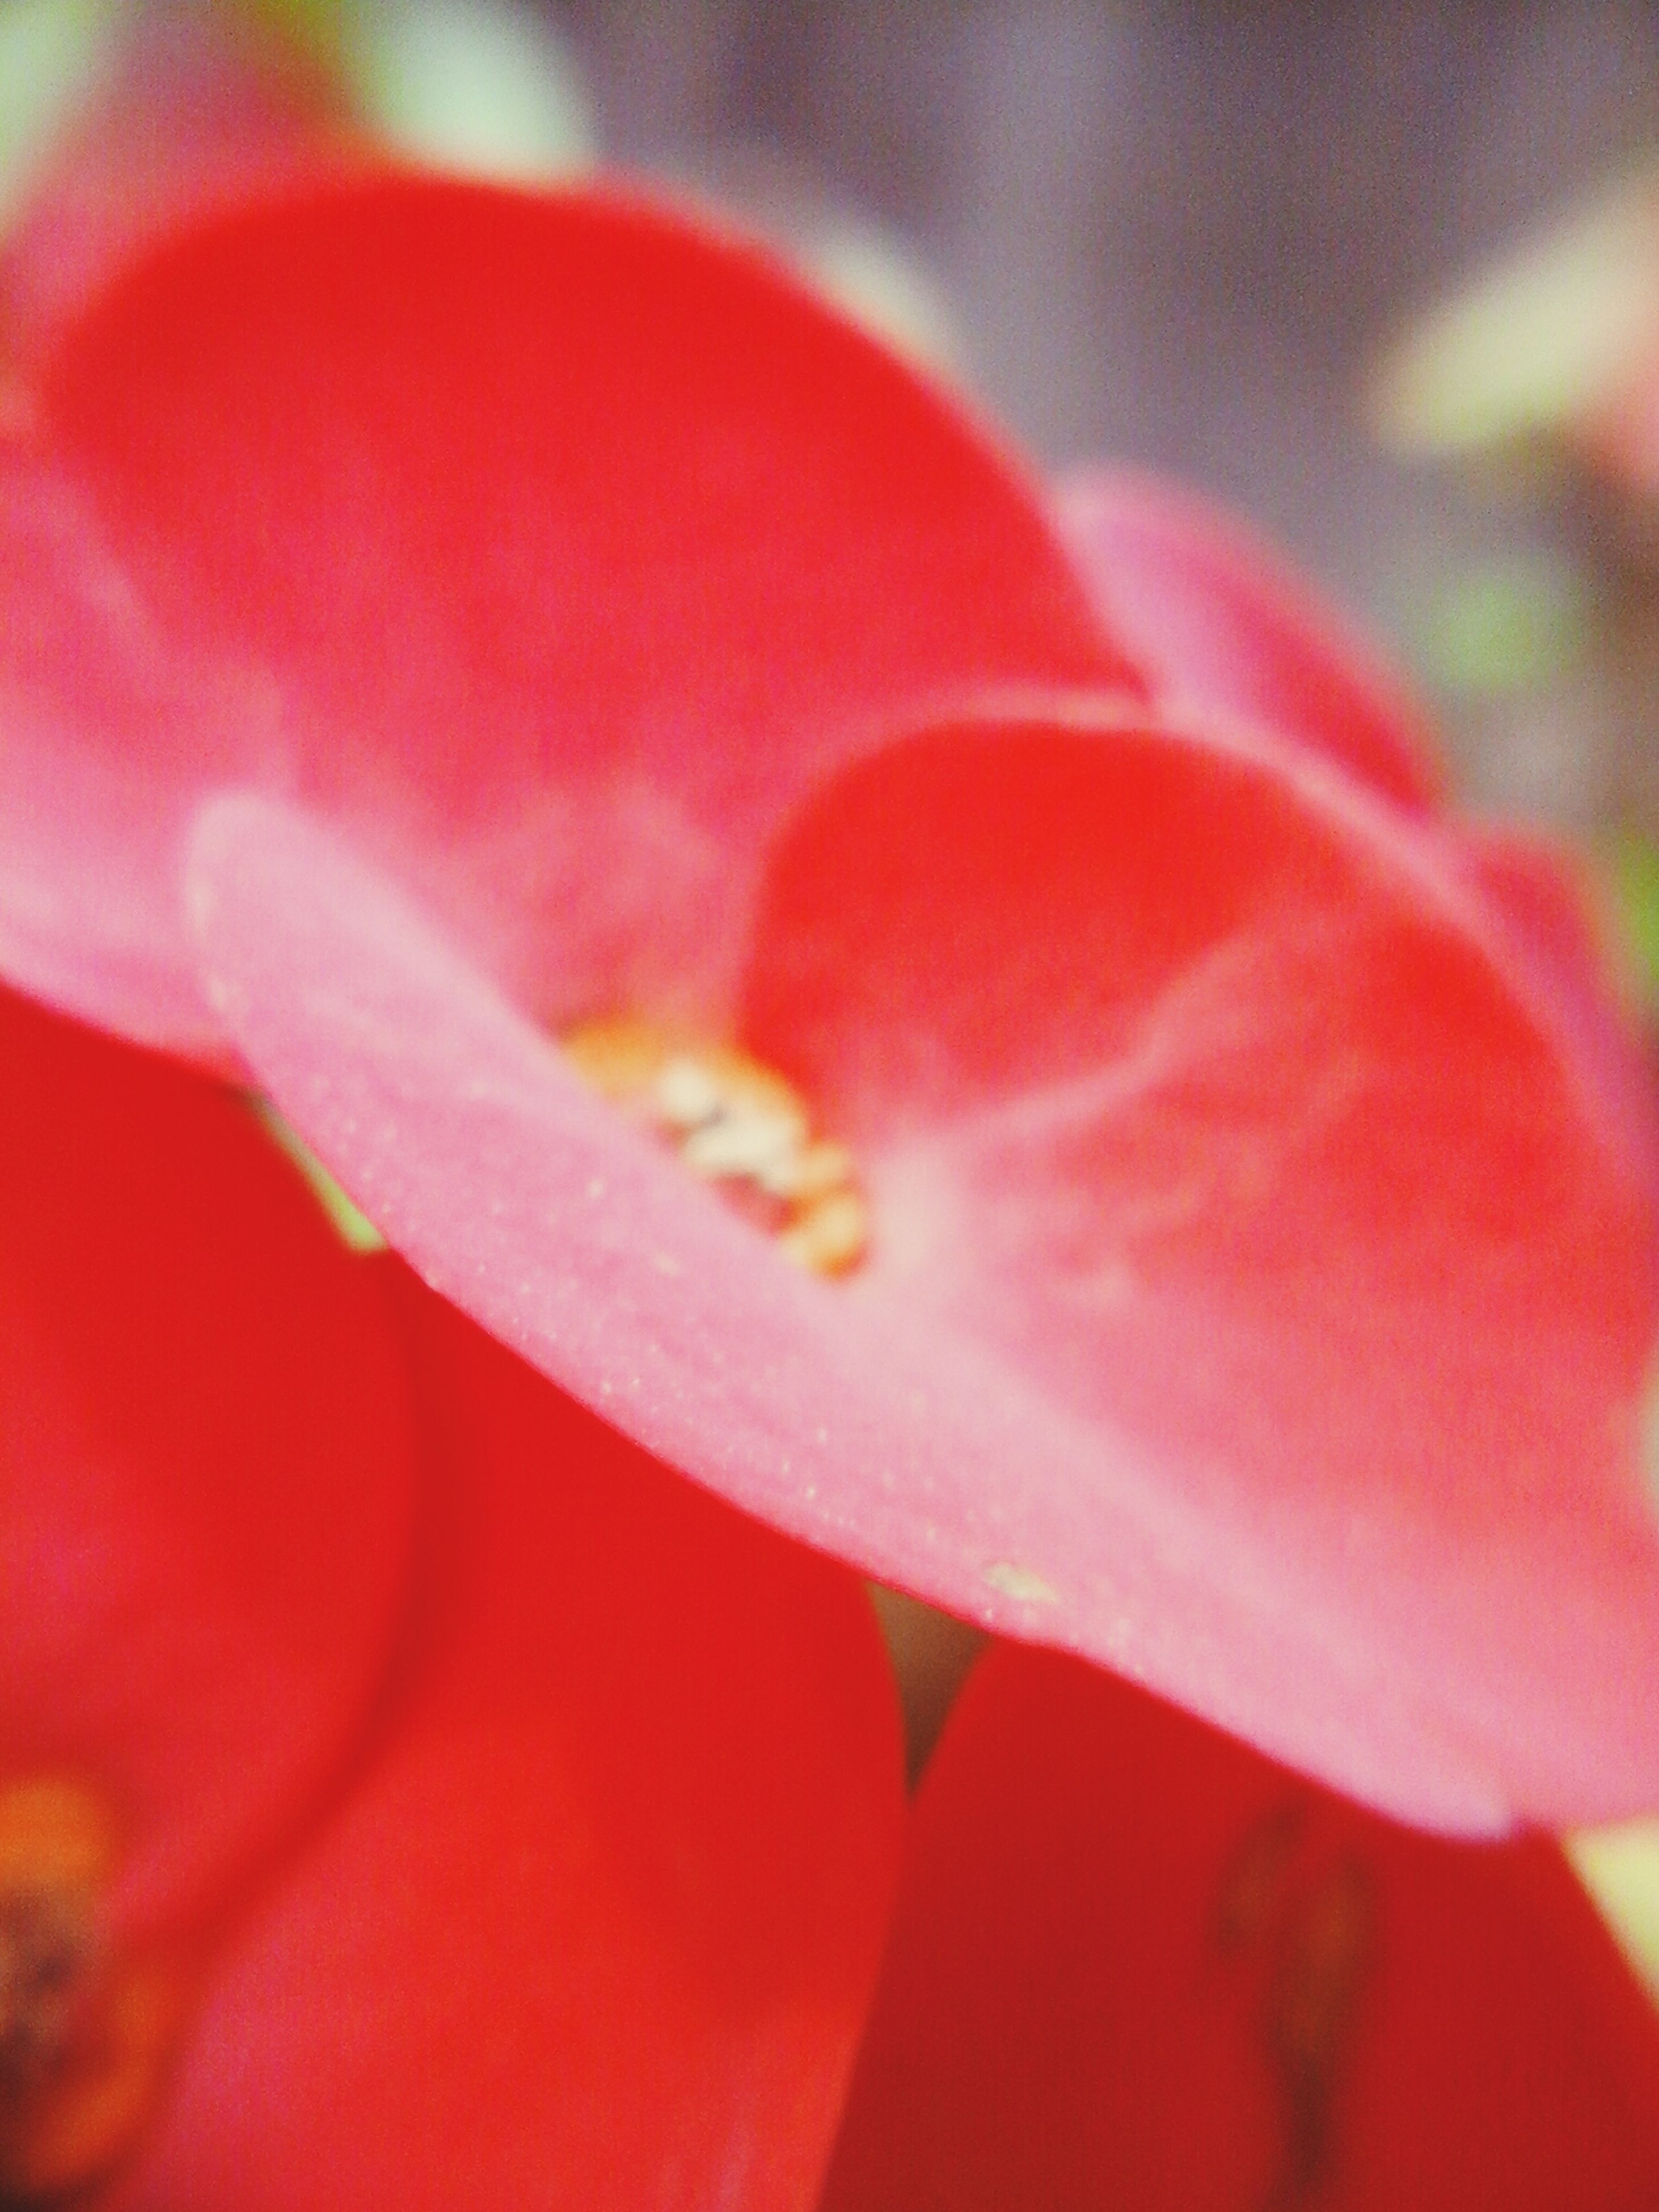 red, petal, freshness, flower, flower head, close-up, single flower, fragility, selective focus, beauty in nature, focus on foreground, macro, nature, extreme close-up, growth, vibrant color, pink color, drop, stamen, no people